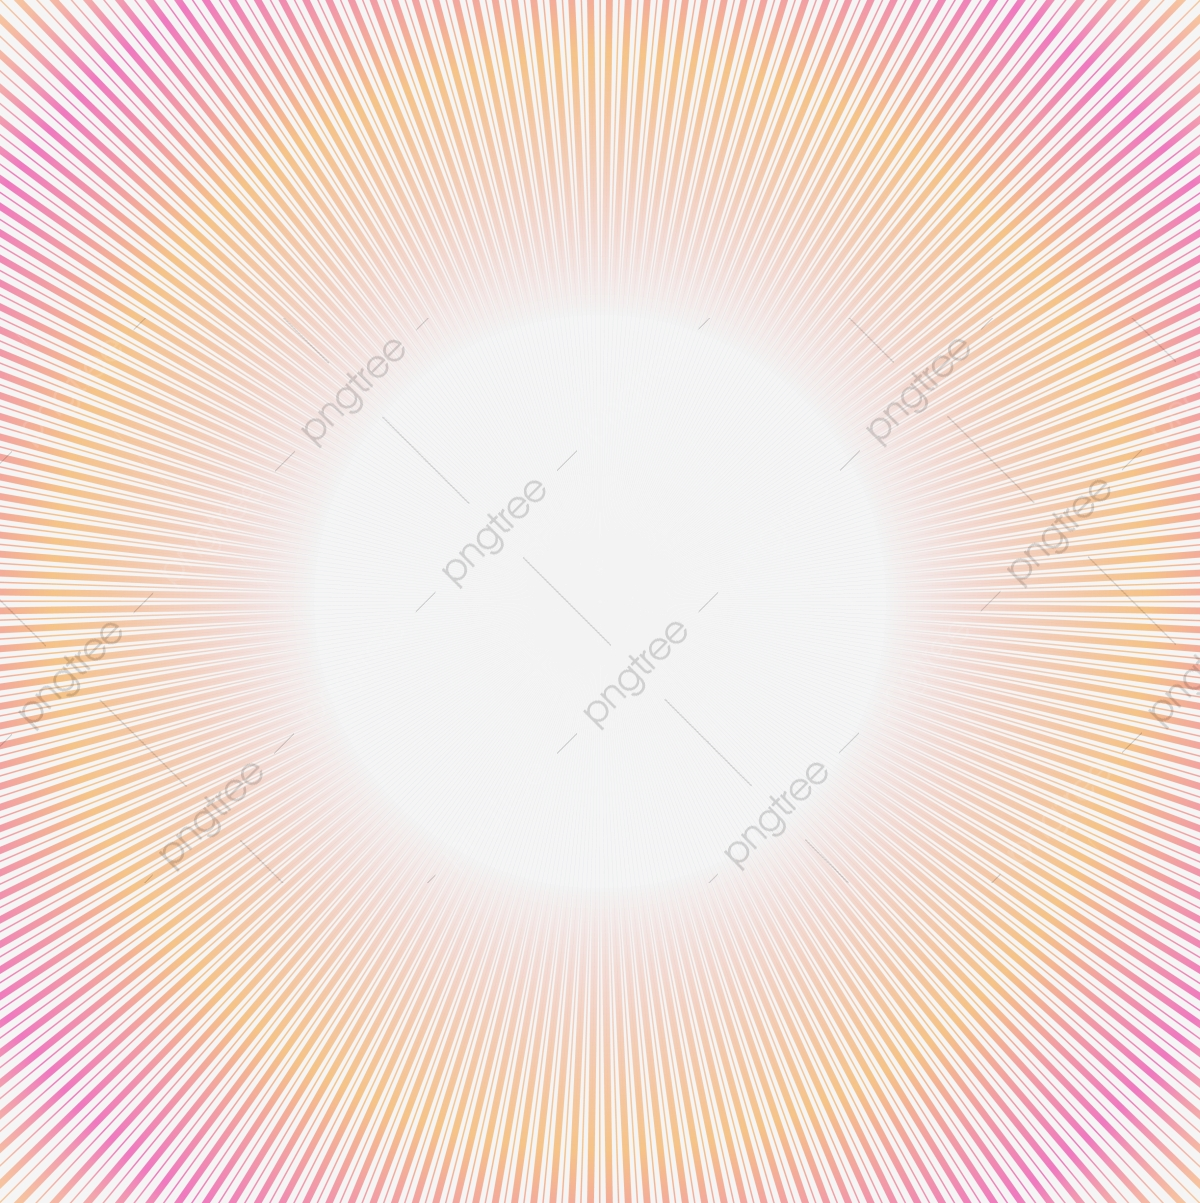 Elegant Comic Radial Lines With Multicolored Tone Vector ... picture